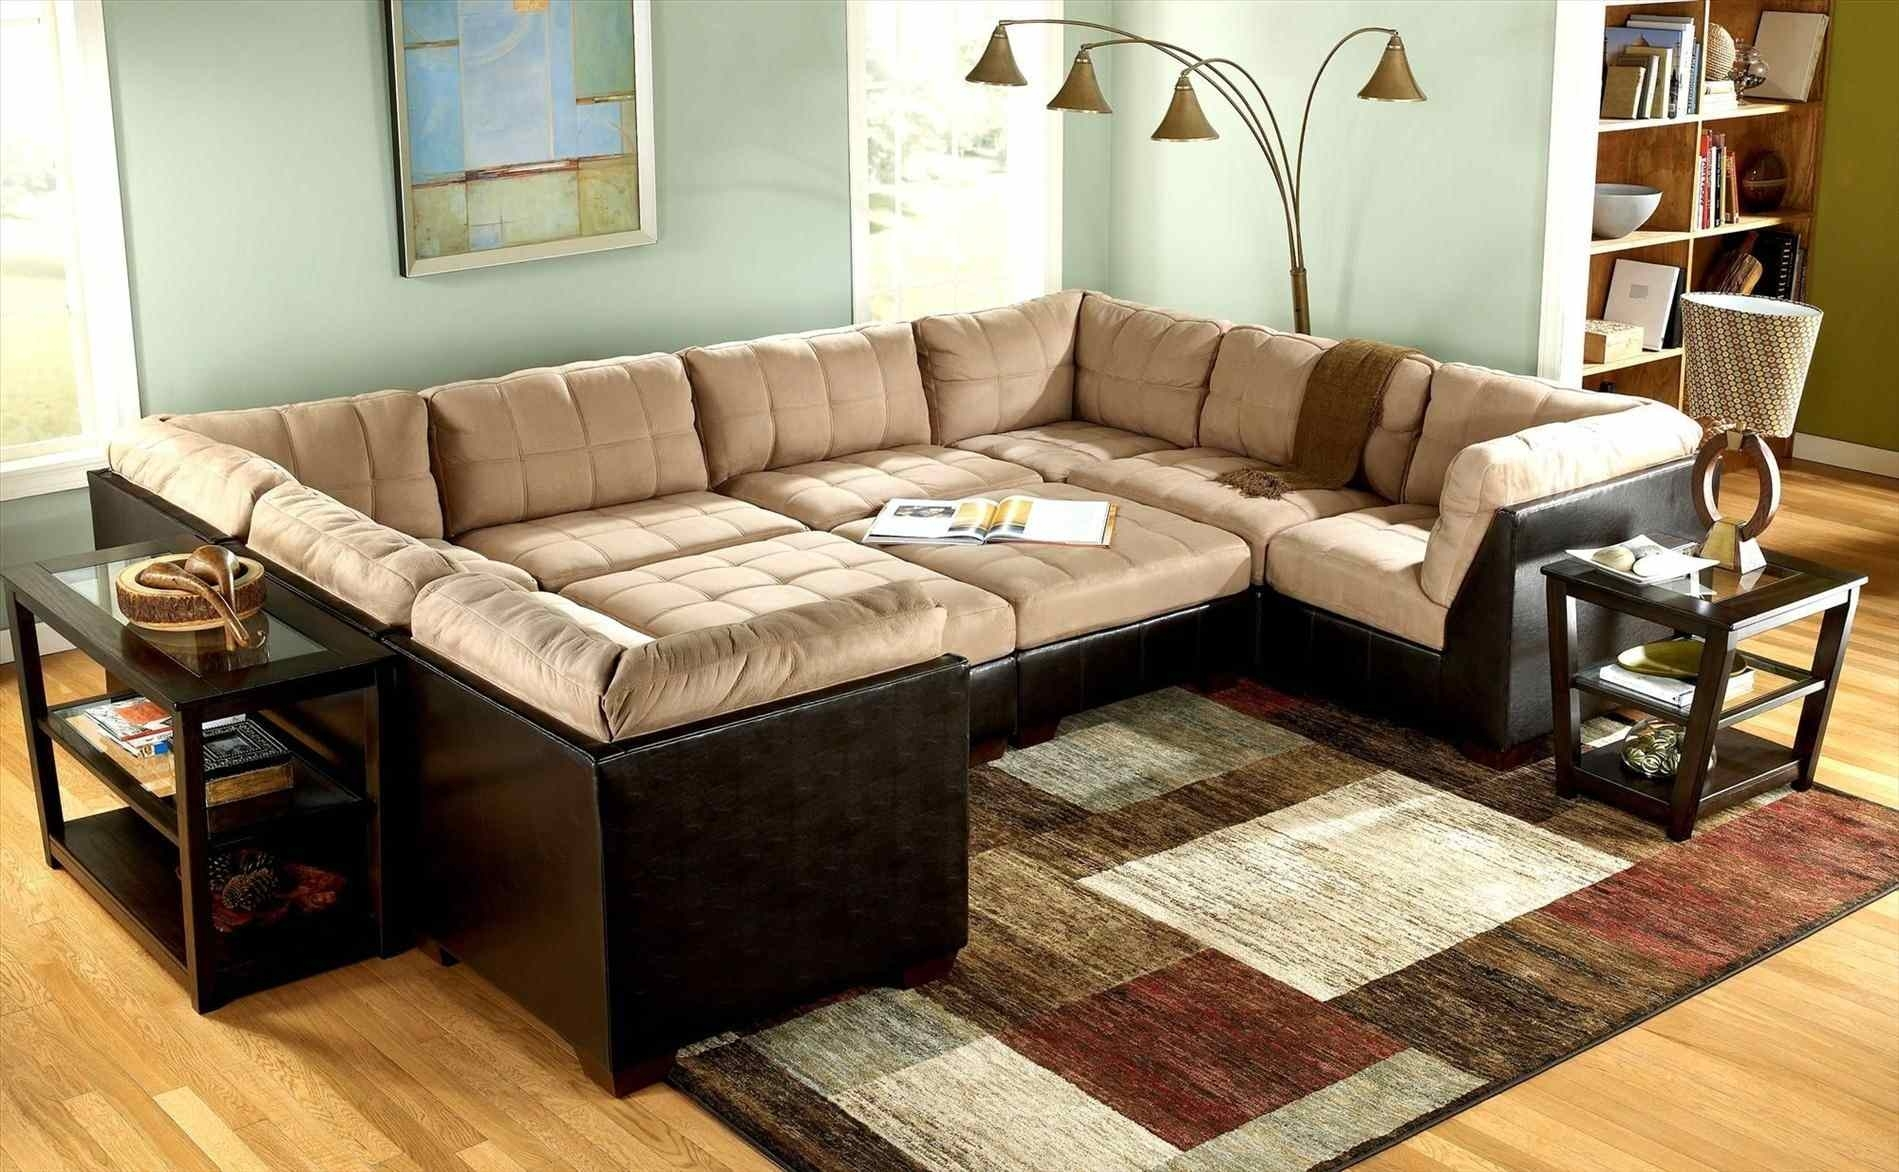 Couch : Furniture Bad Boy Sectional Es Wrap Around Couch Furniture Intended For Sectional Sofas At Bad Boy (View 7 of 15)